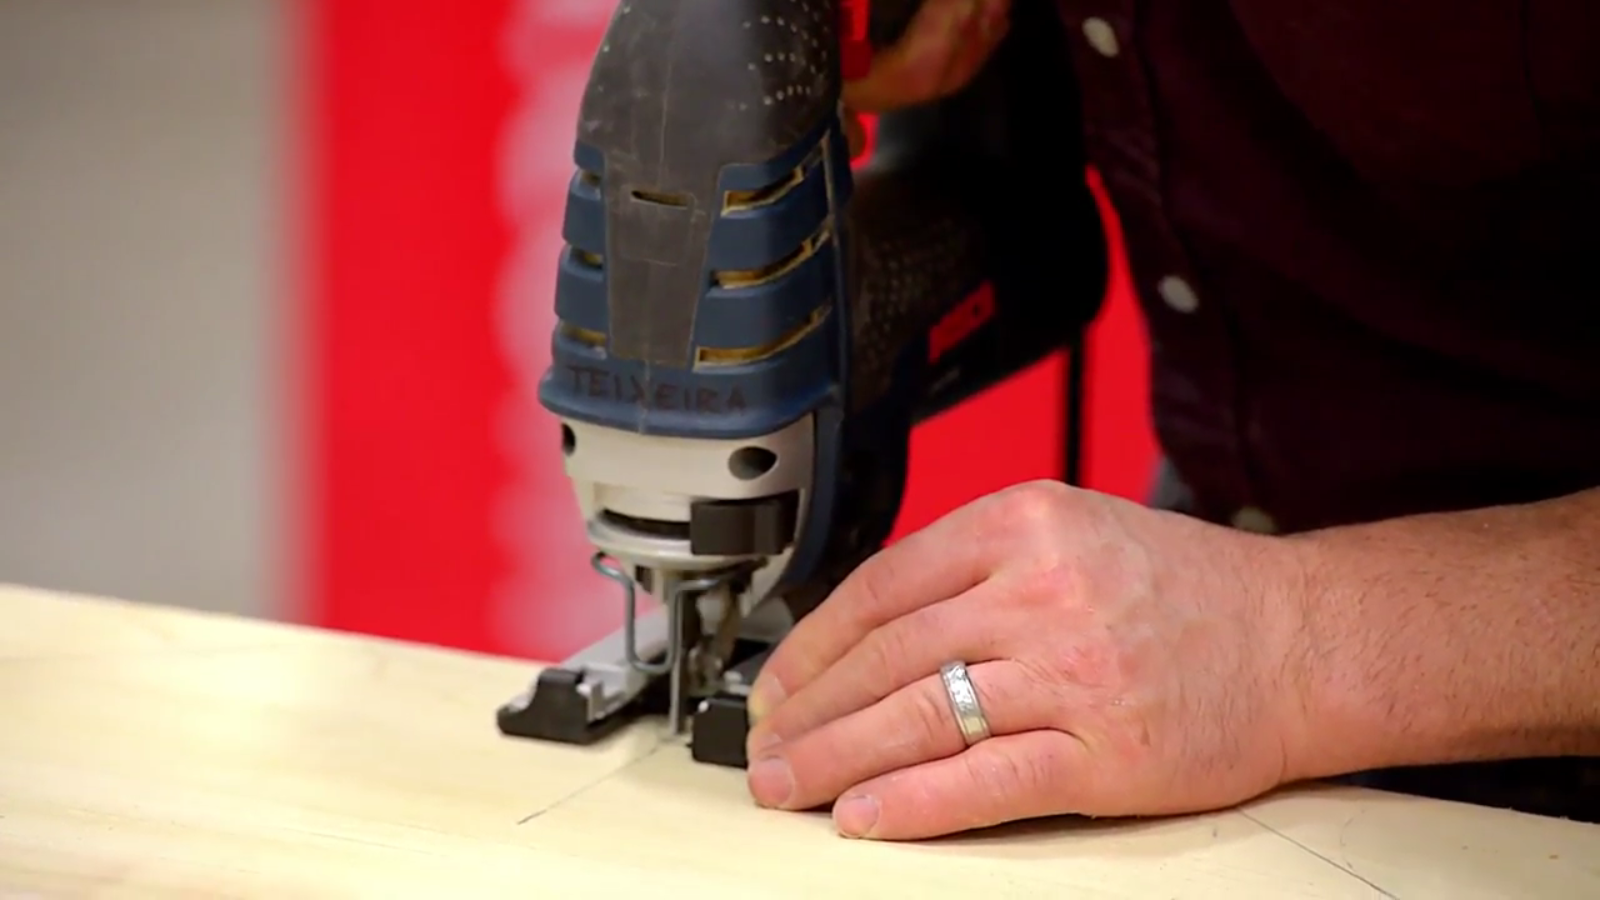 easy accurate cuts with a bosxh jigsaw